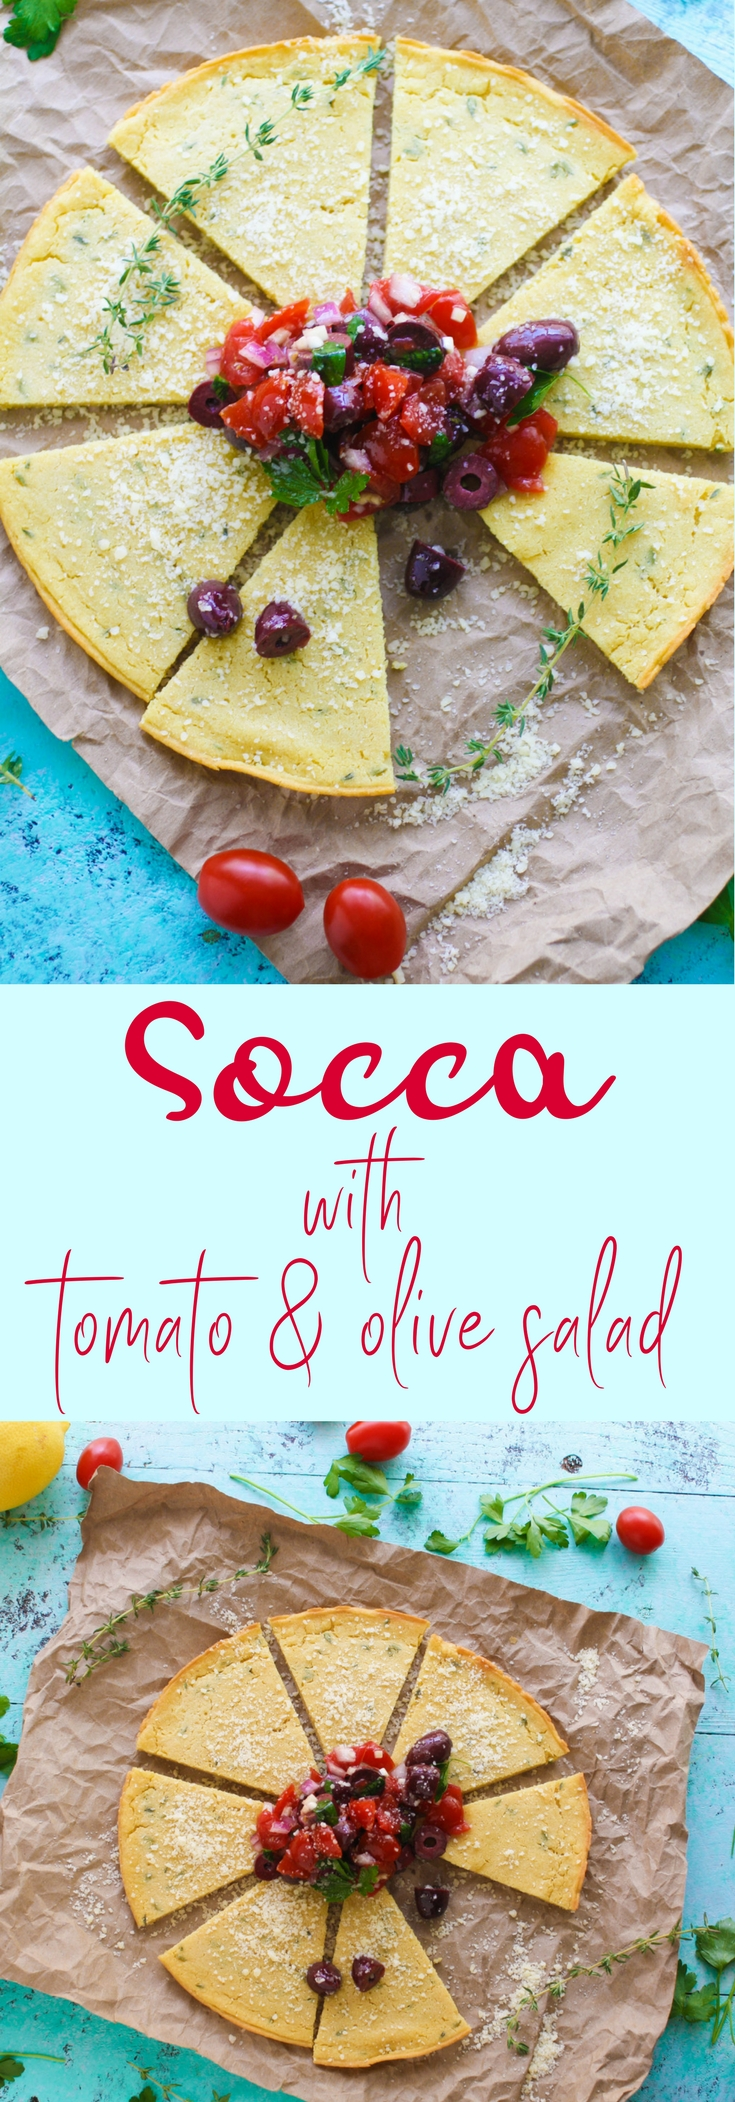 Socca (Chickpea Flour) Flatbread with Tomato and Olive Salad should be your next savory snack! You'll adore this gluten-free Socca (Chickpea Flour) Flatbread with Tomato and Olive Salad!